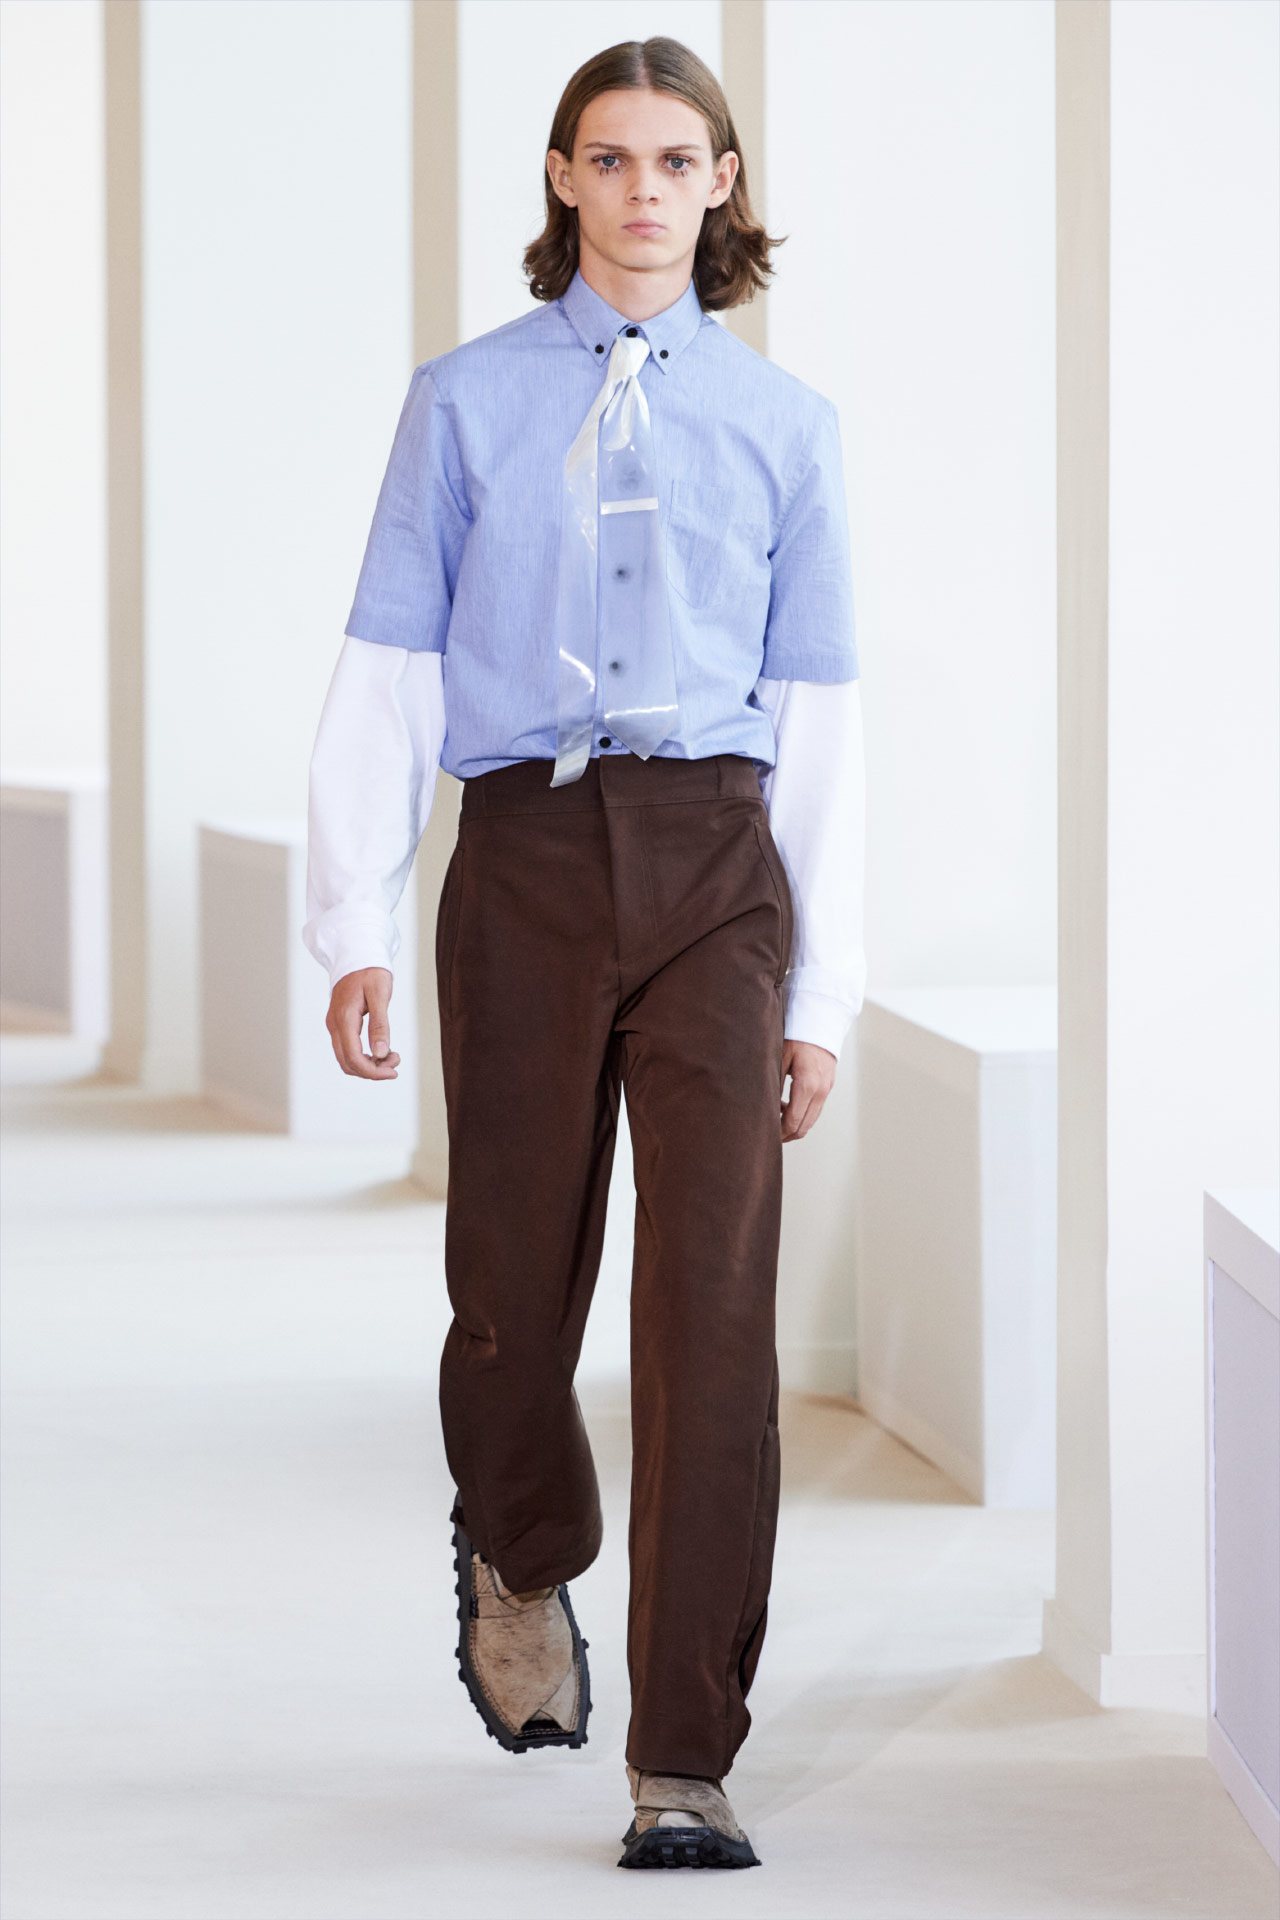 Look Spring/Summer, image 17